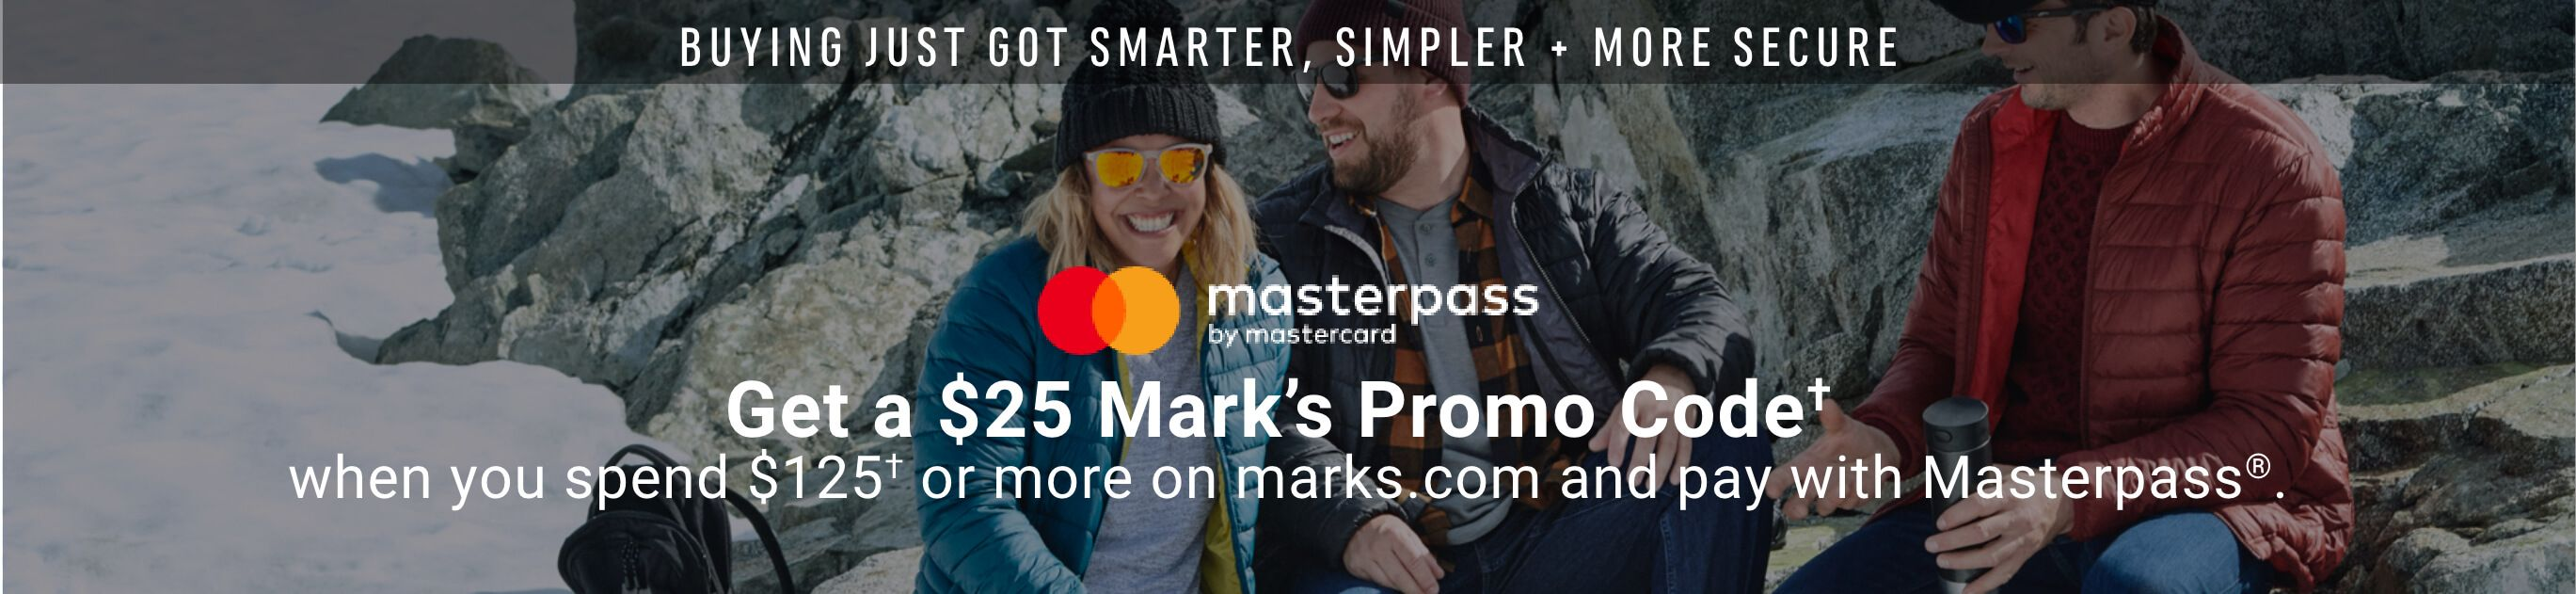 Buying Just Got Smarter, Simpler and More Secure. Get a $25 Mark's Promo Code when you spend $125 or more before taxes on marks.com and pay with Masterpass®